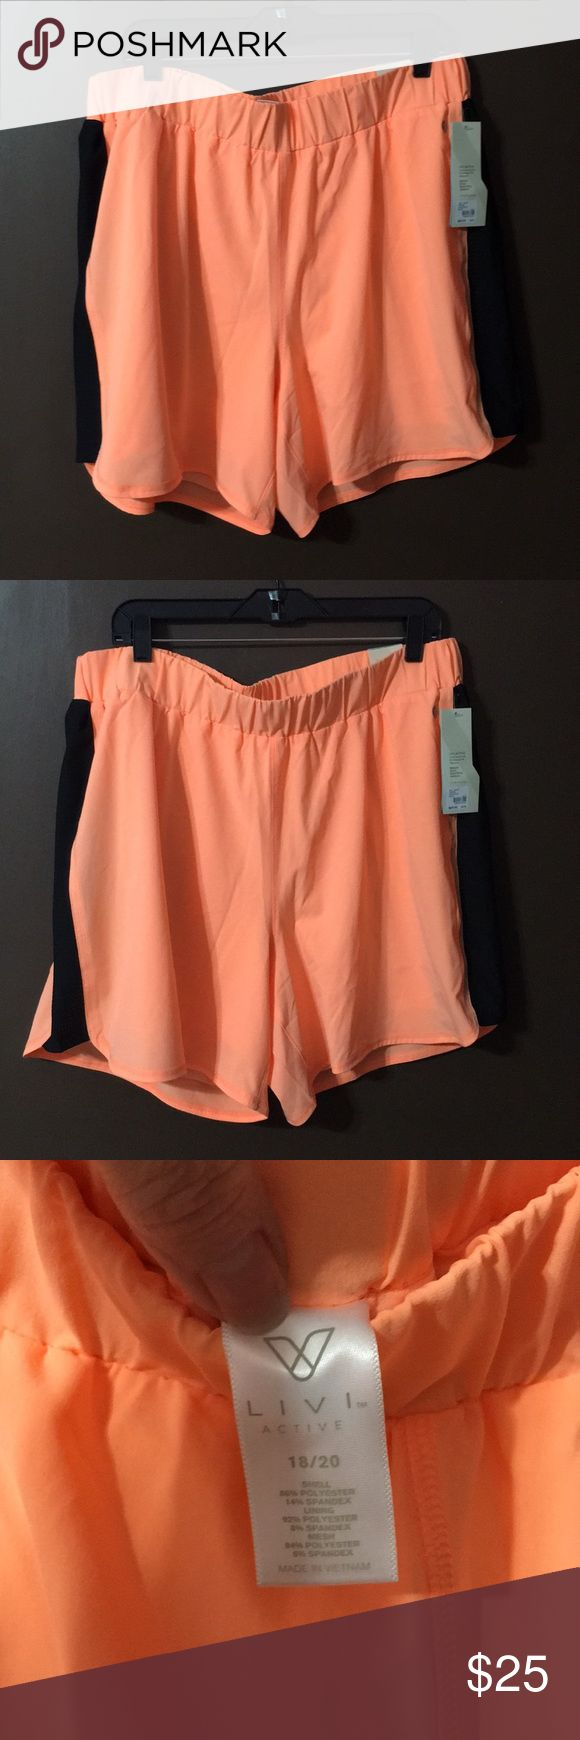 NWT Lane Bryant active shorts NWT Lane Bryant livi active cooling shorts. Hilighter orange with black stripe on sides. Size 18/20, cool touch fabric, 50+upf sun protection, moisture wicking, quick drying,supportive stretch and fade resistant Lane Bryant Pants